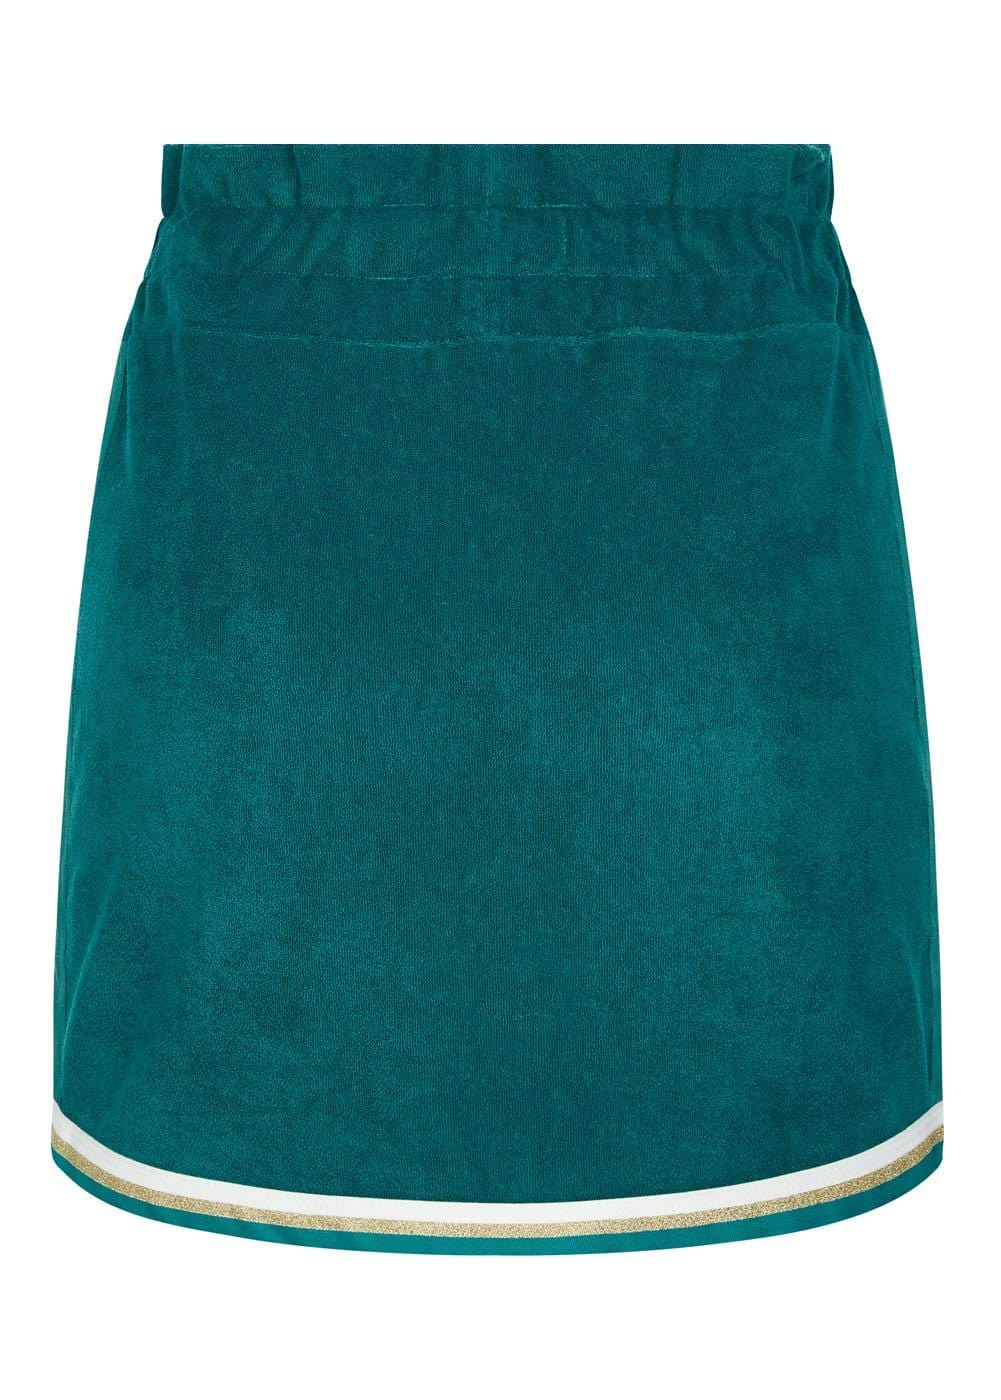 Girls Teal Retro Terry Skirt - Back